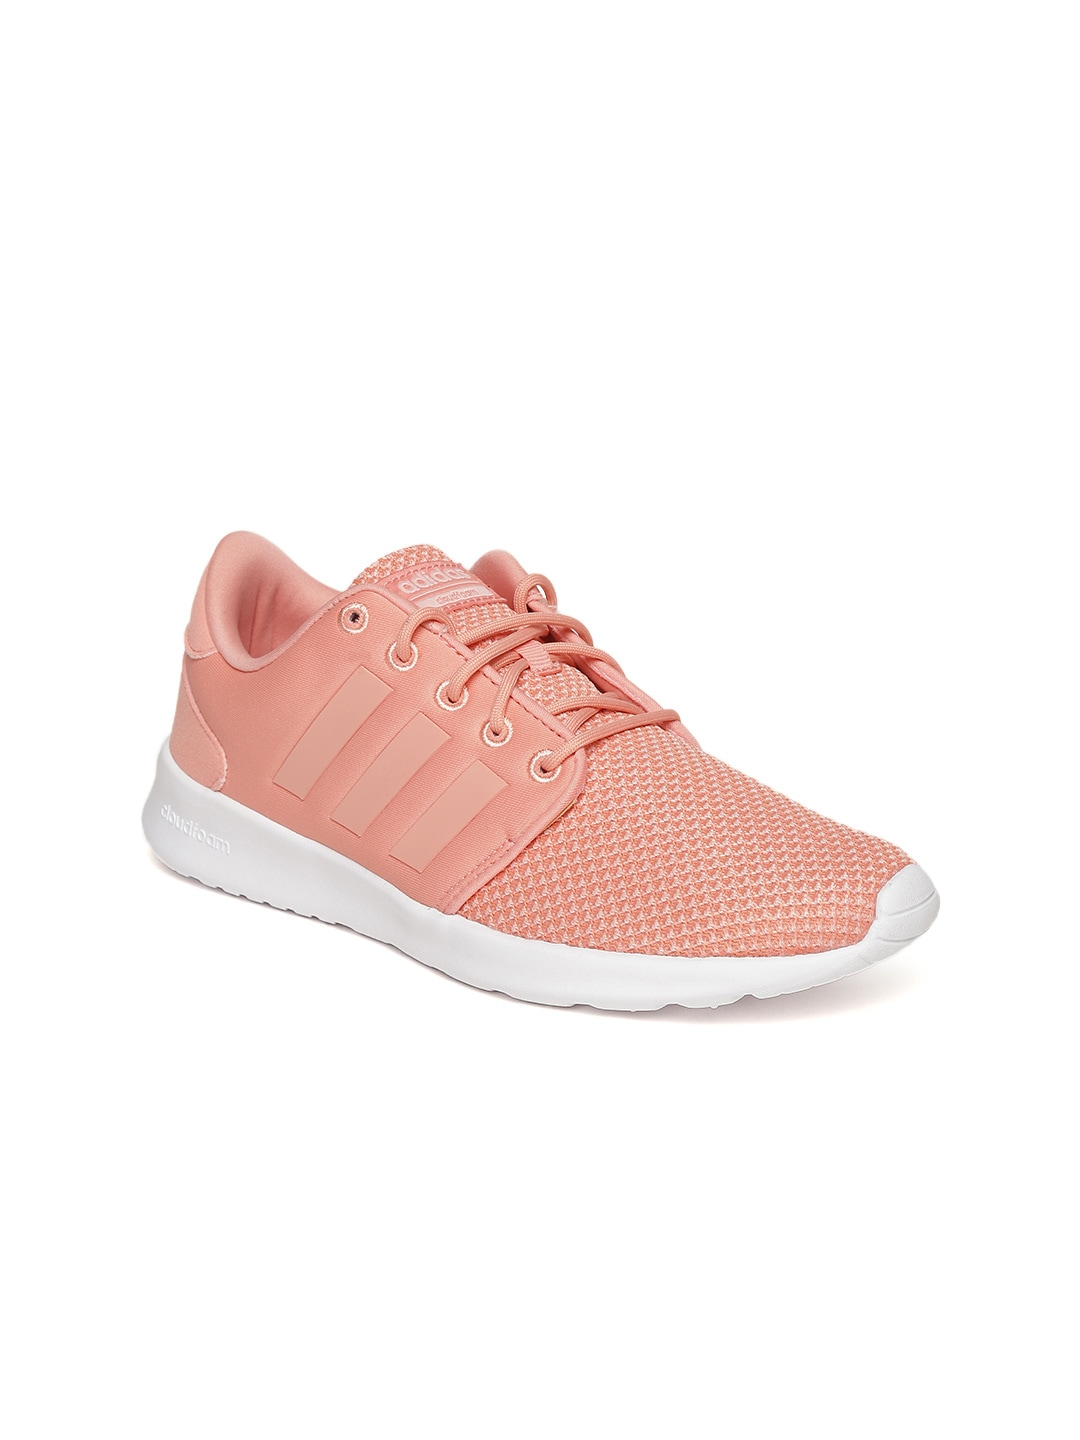 Adidas Neo Shoes - Buy Adidas Neo Shoes online in India 5d51c48352